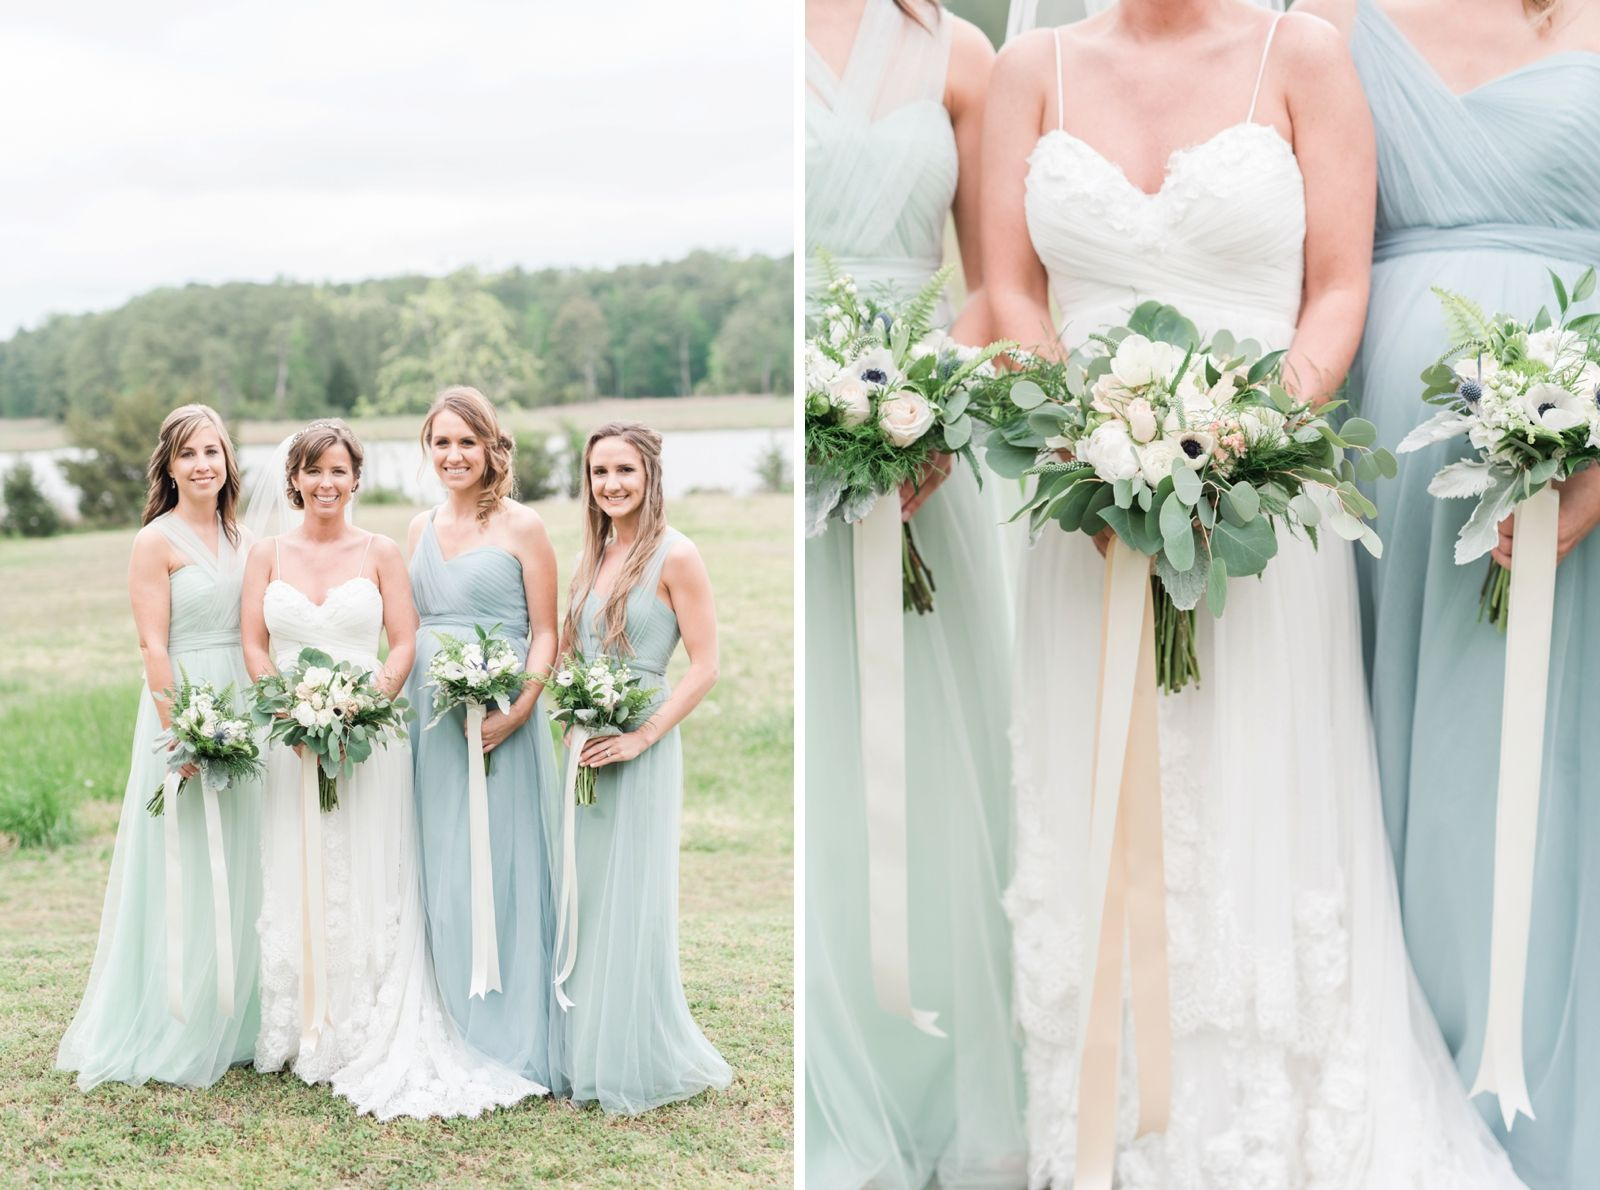 Blue And Green Jenny Yoo Bridesmaids Dresses Virginiabeach - Wedding Dresses Virginia Beach